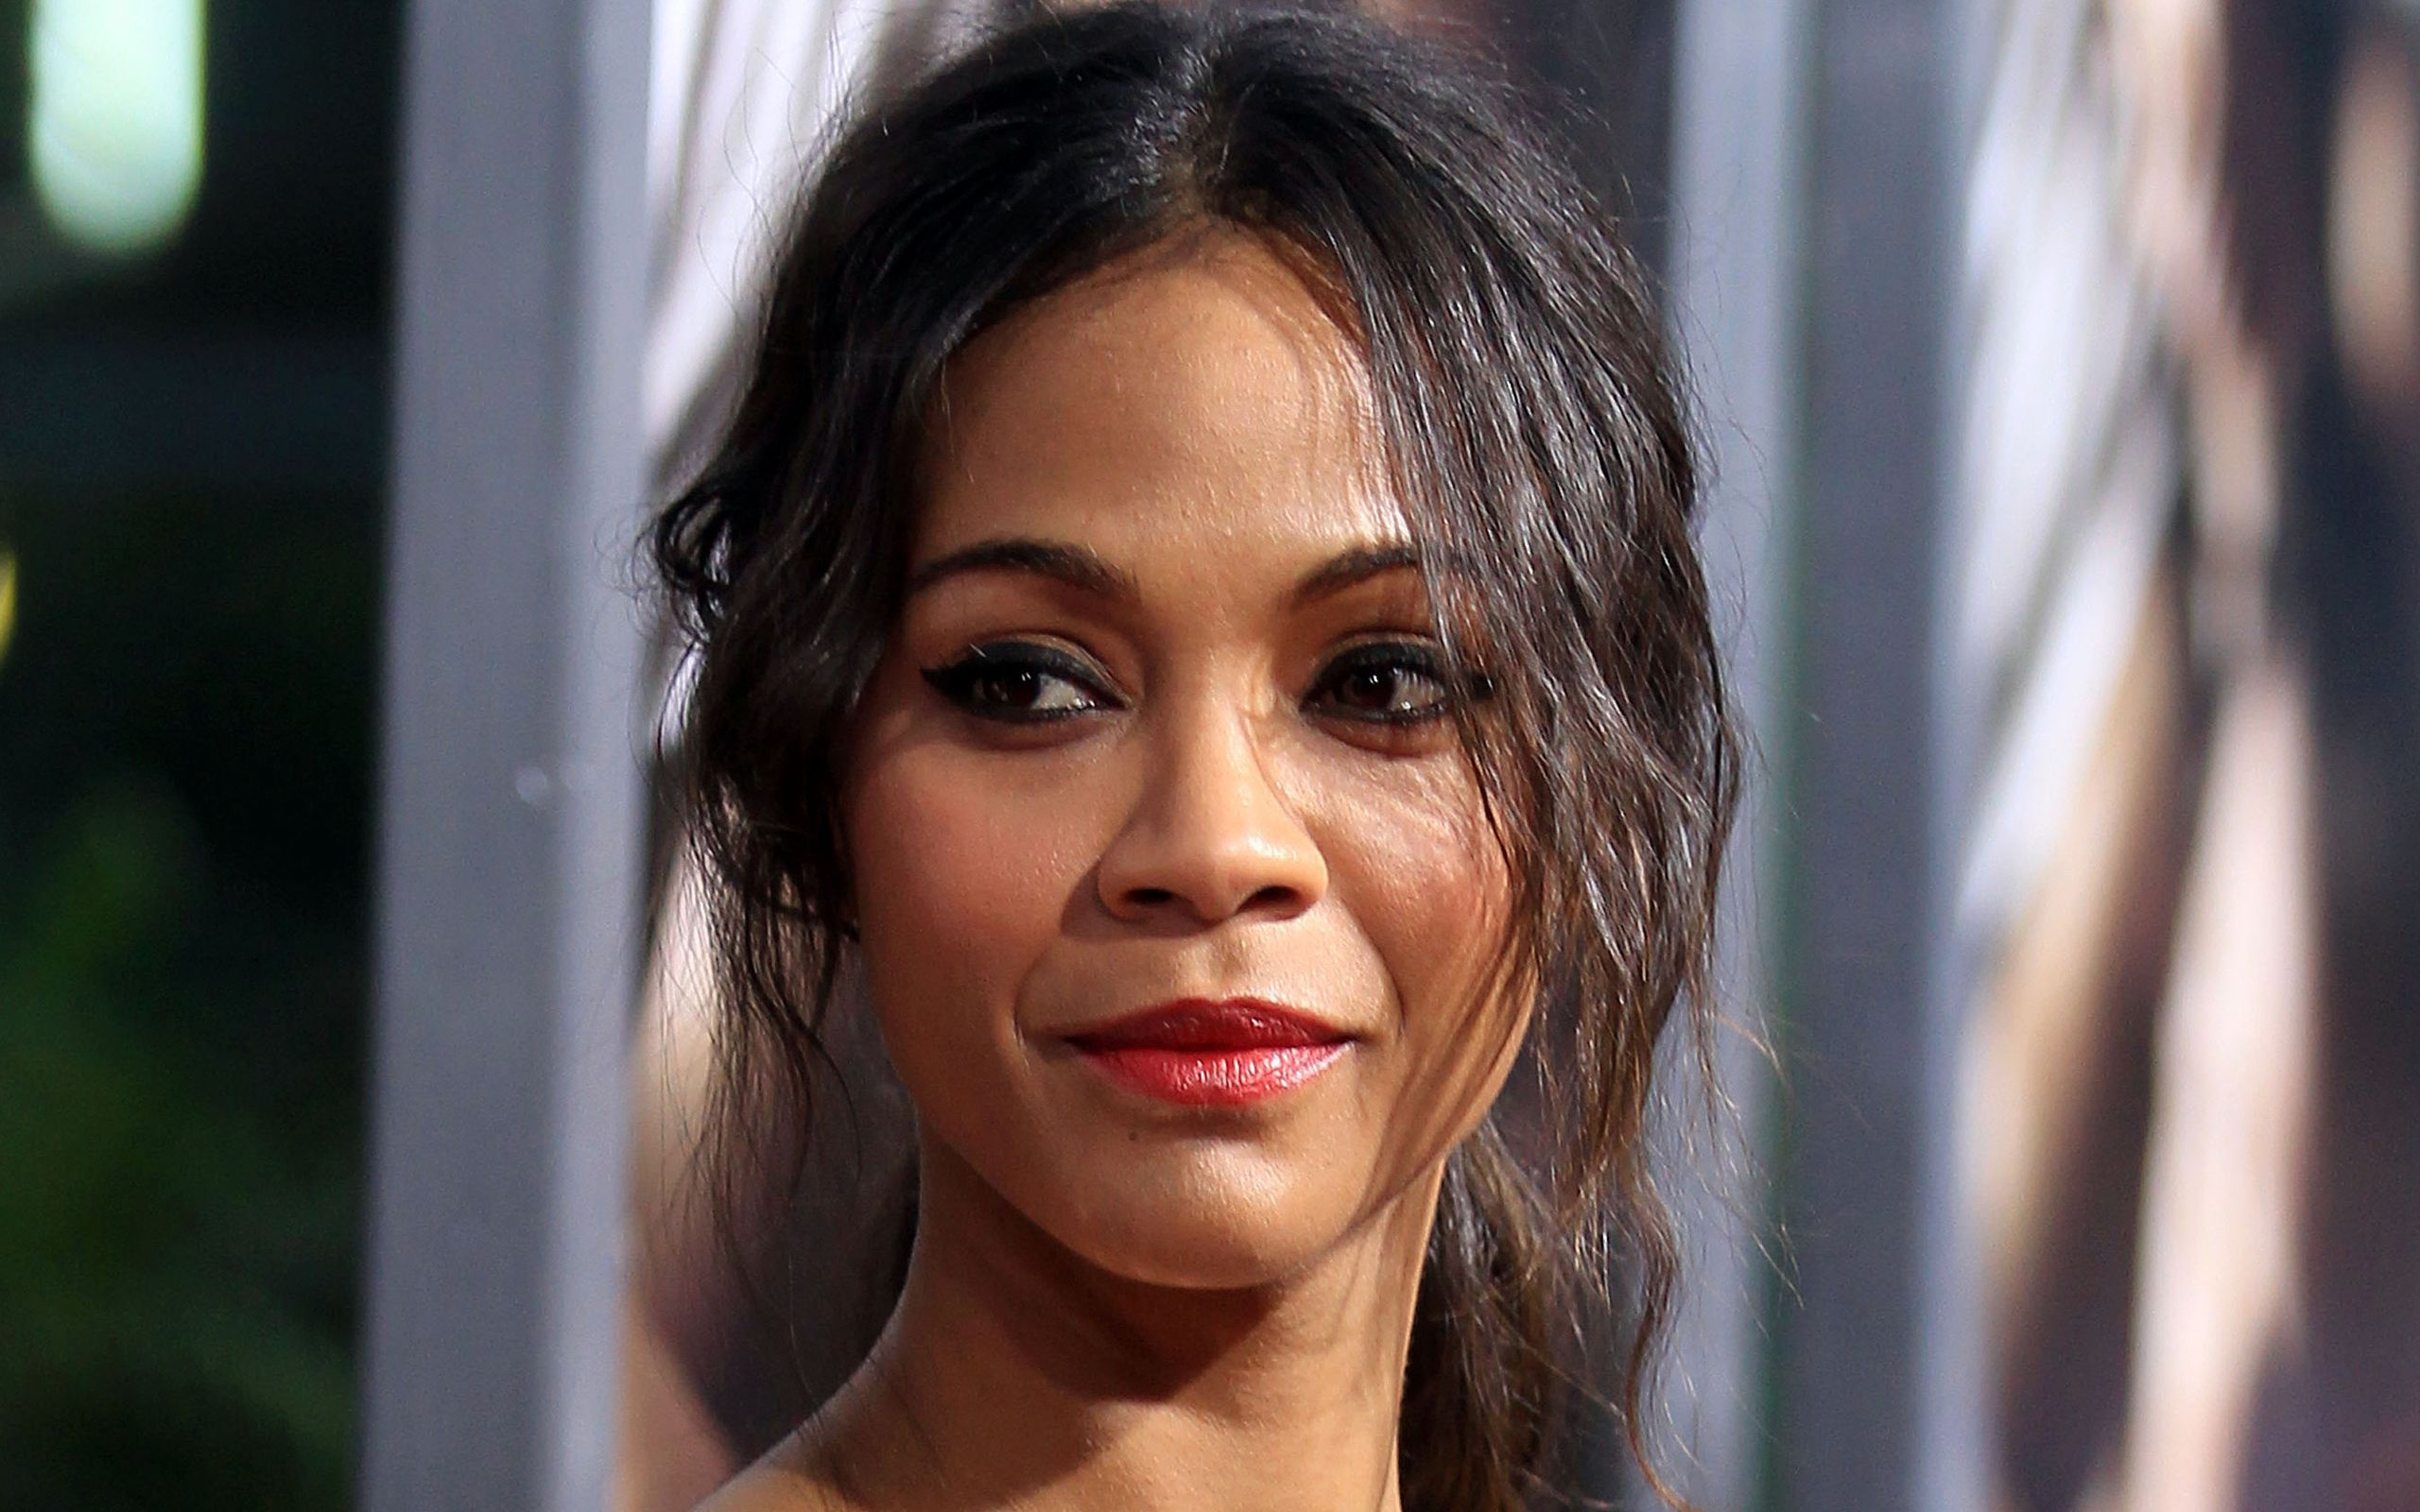 Zoe saldana wallpapers backgrounds - Zoe wallpaper ...